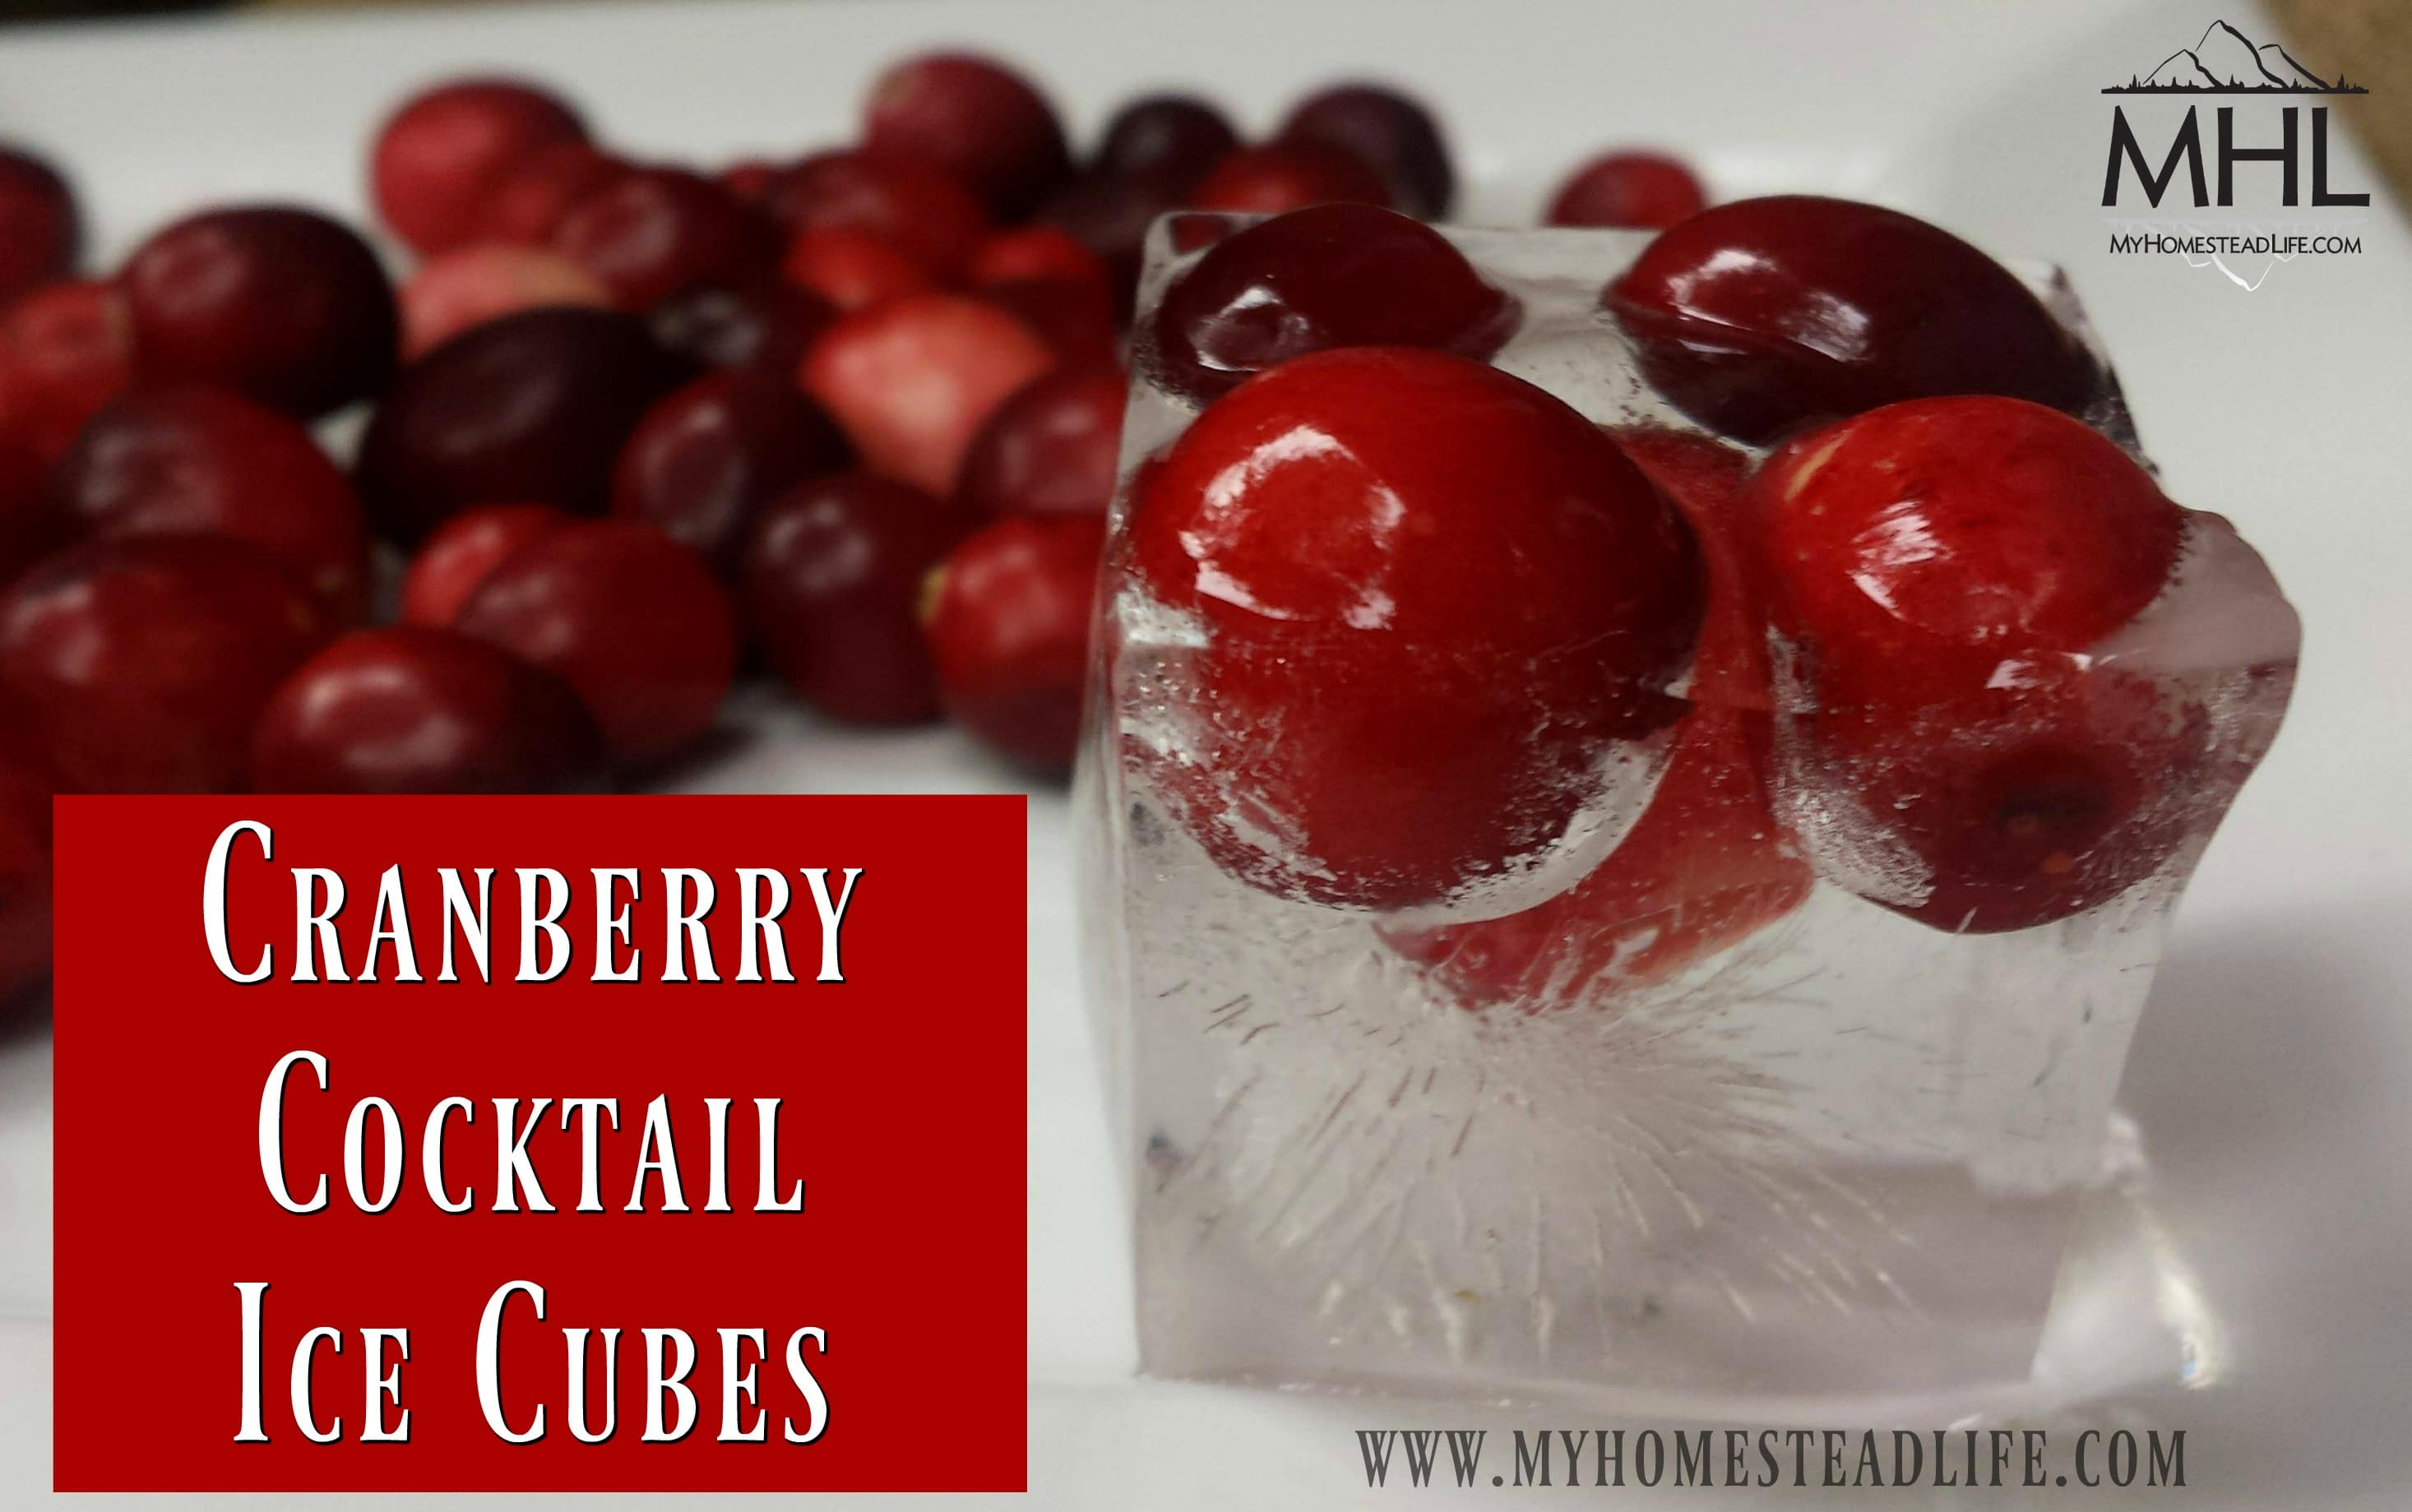 Cranberry Cocktail Ice Cubes, the perfect addition to your Cranberry Spritzer Mocktail